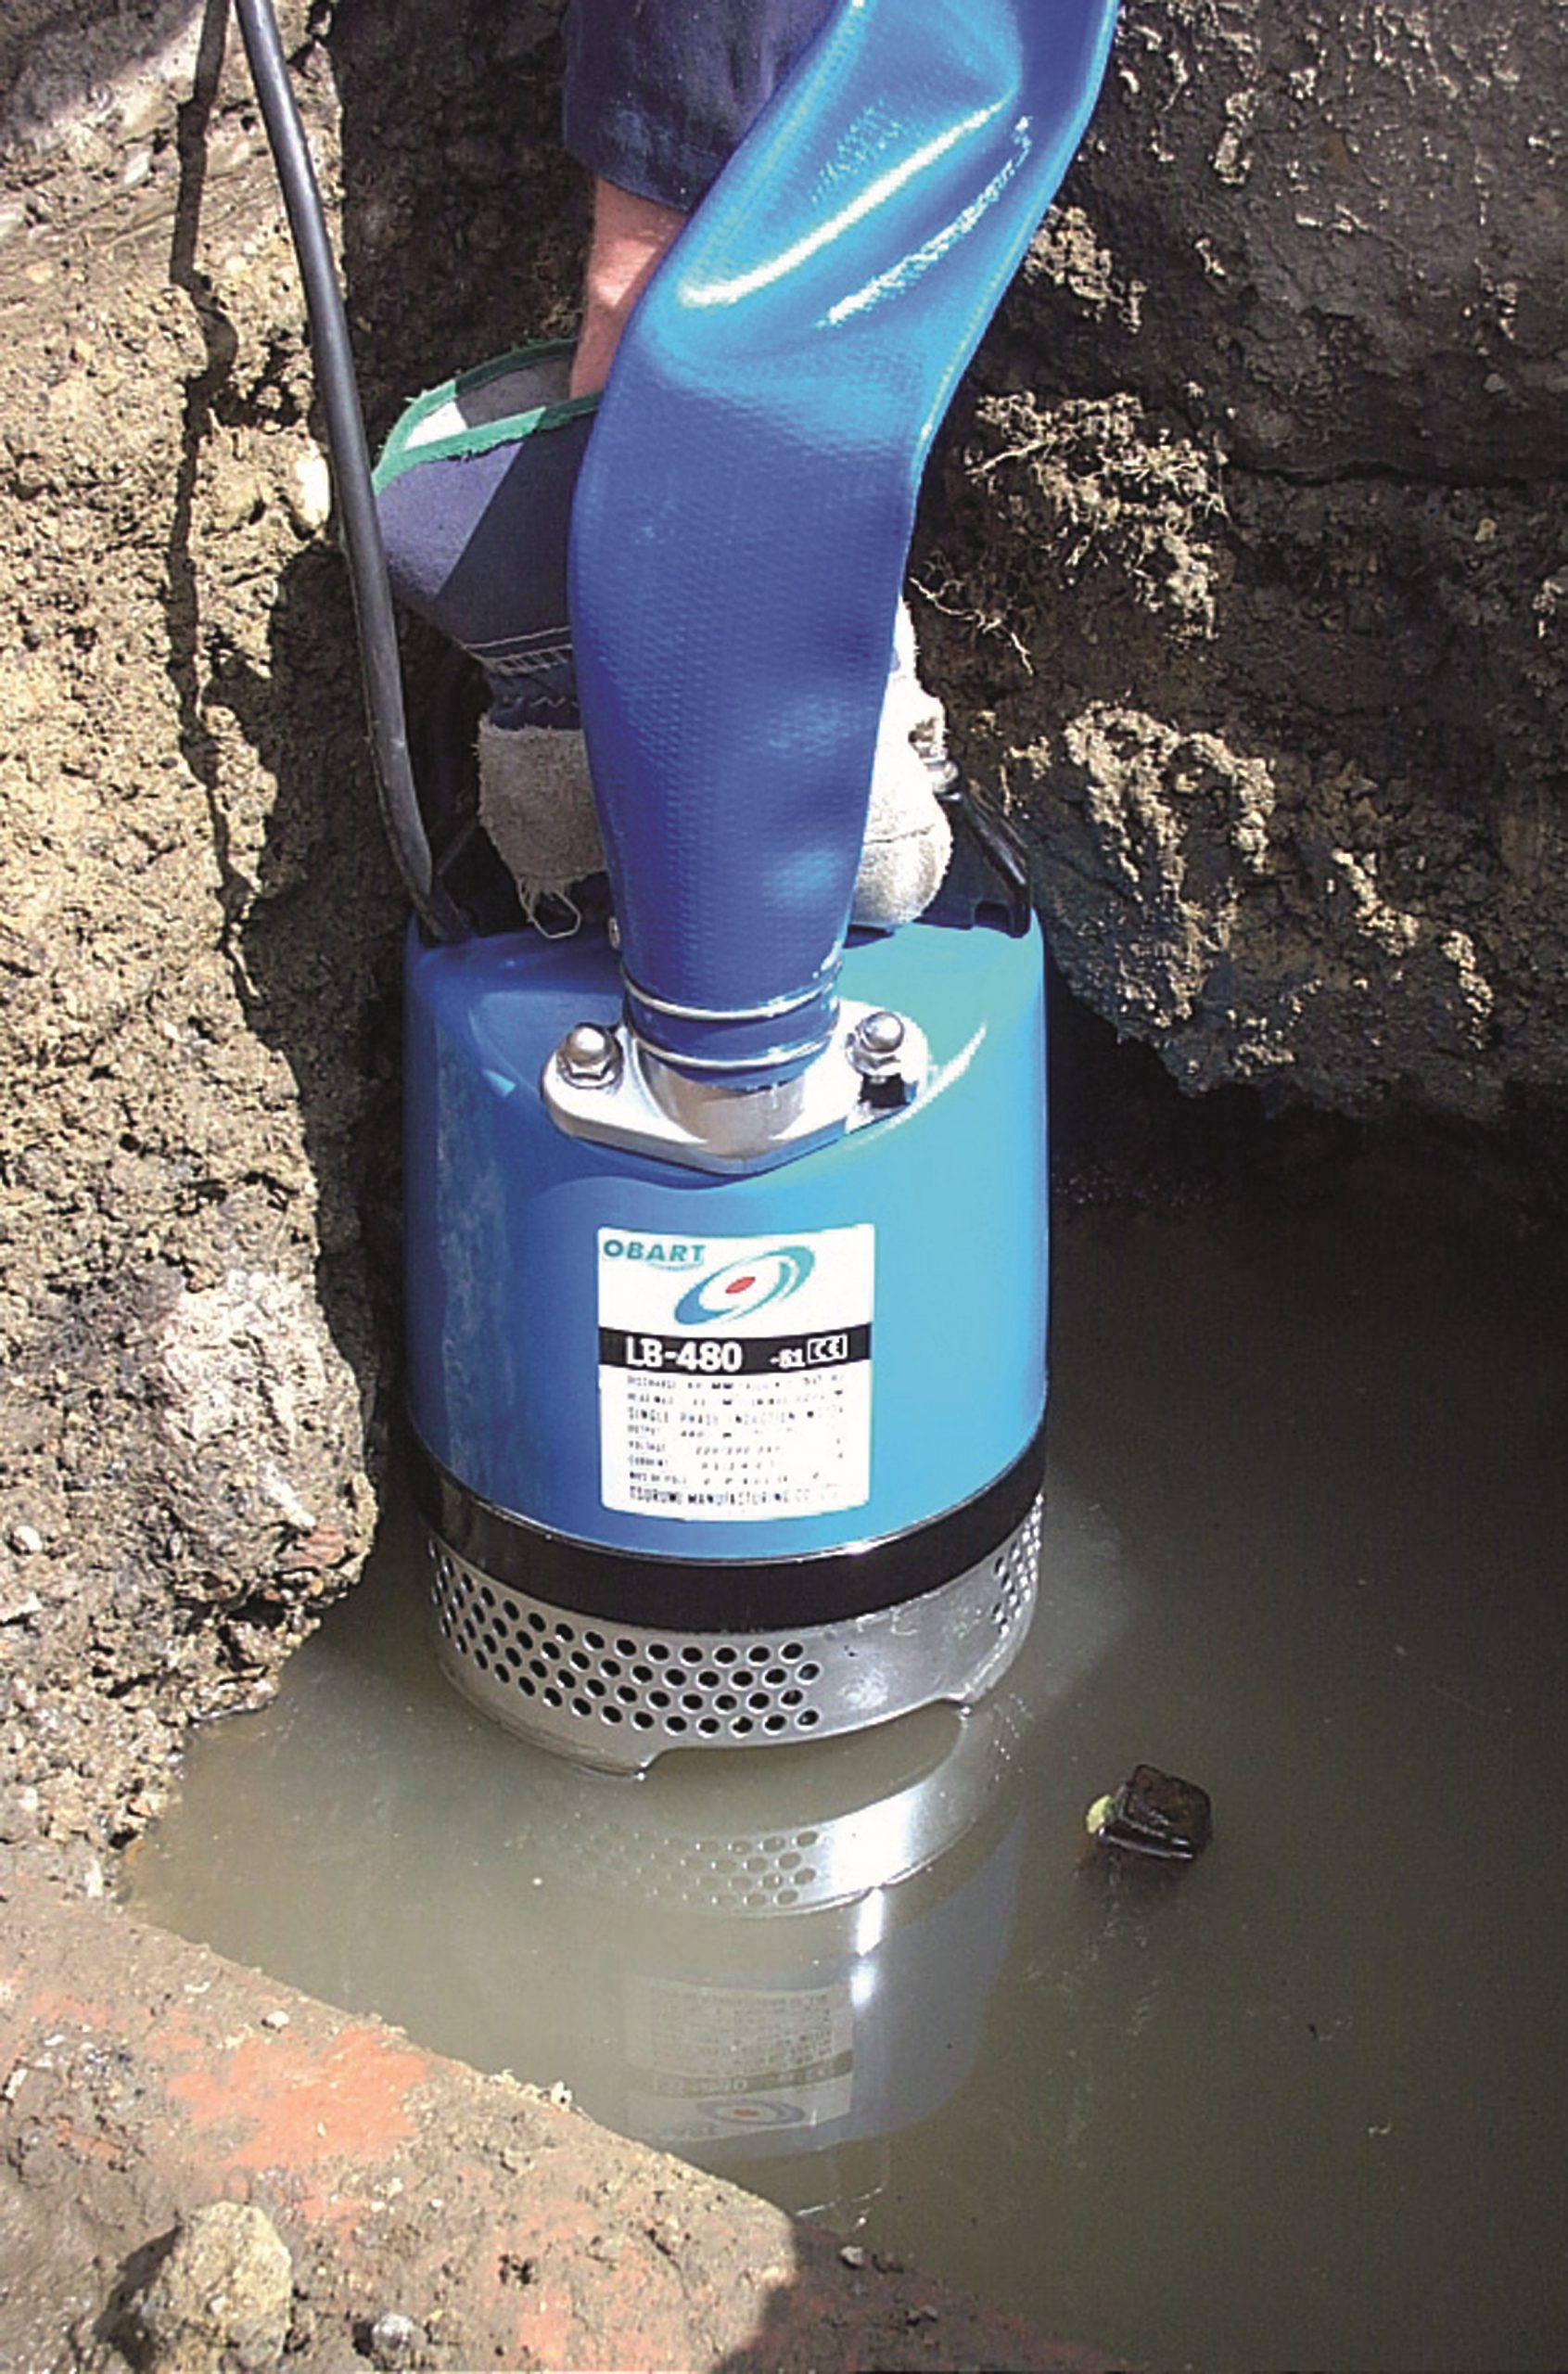 50mm Submersible Water Pump